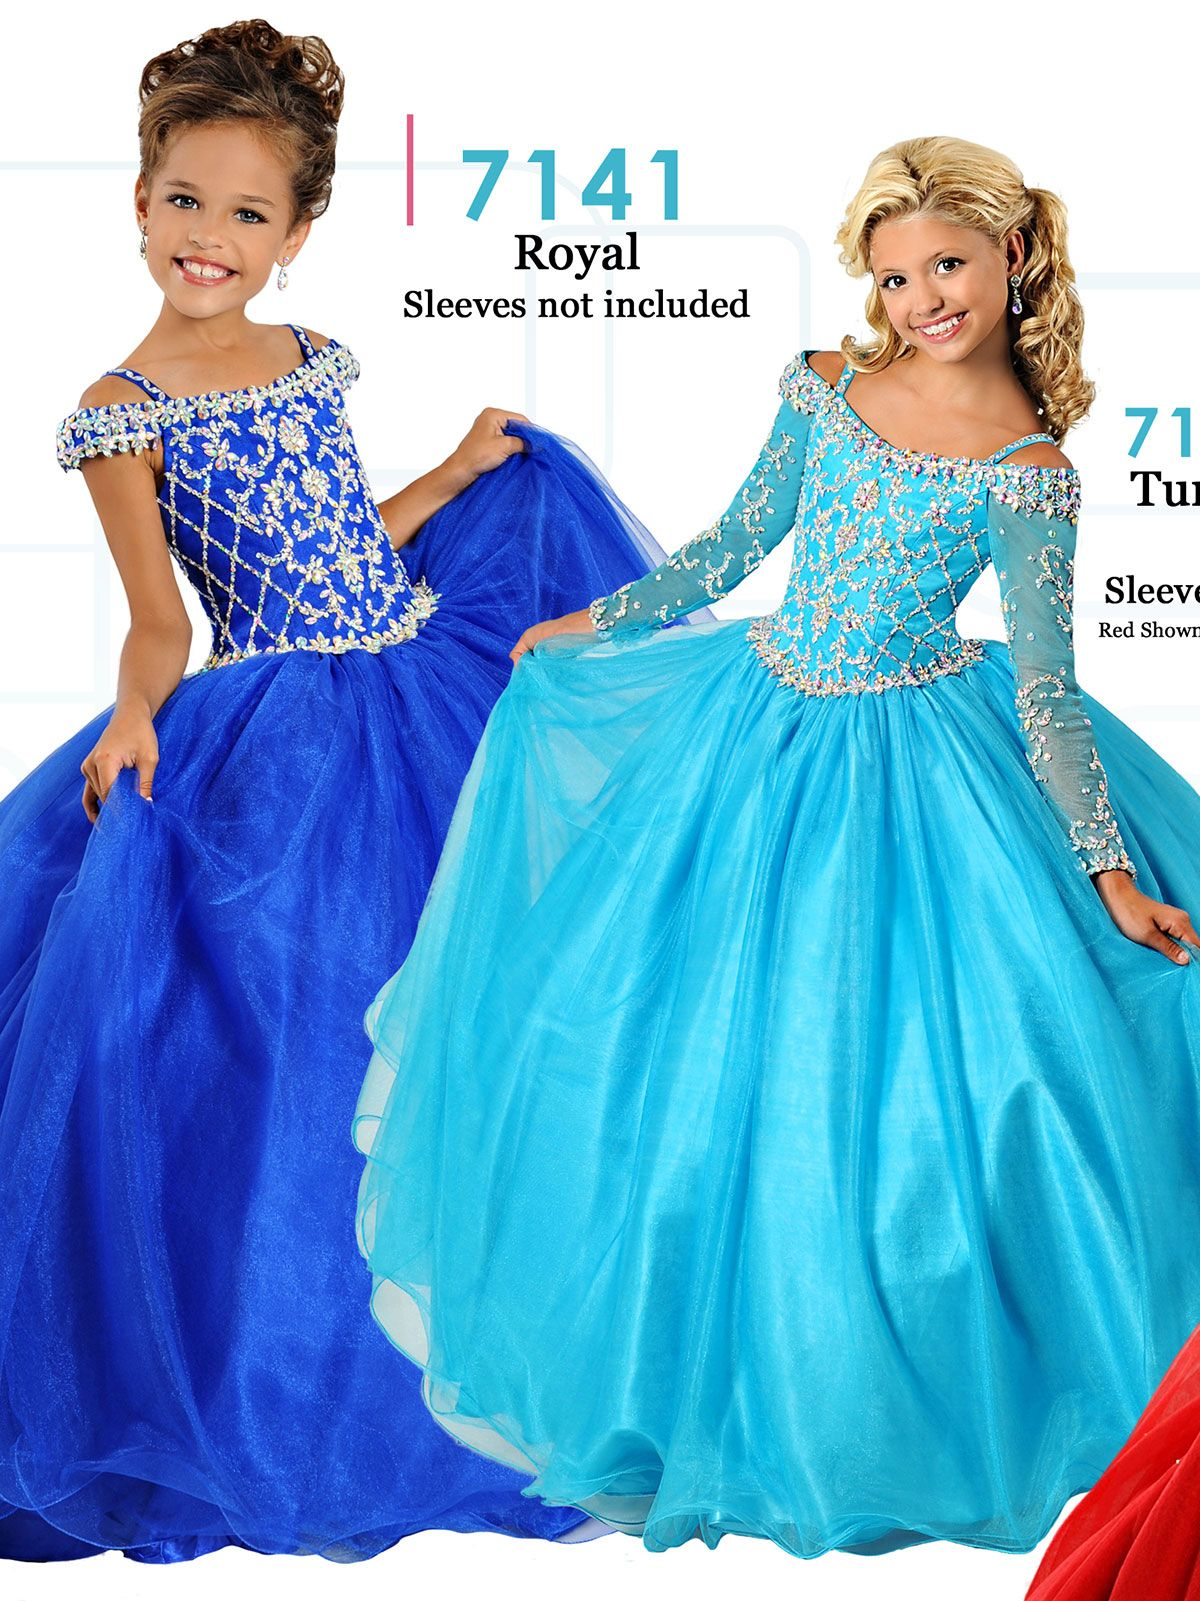 63c1ae818890 Let your beautiful girl stand out on stage in this Ritzee Girls pageant  dress. This Ritzee Girls pageant dress 7141 features an off the shoulder  neckline ...